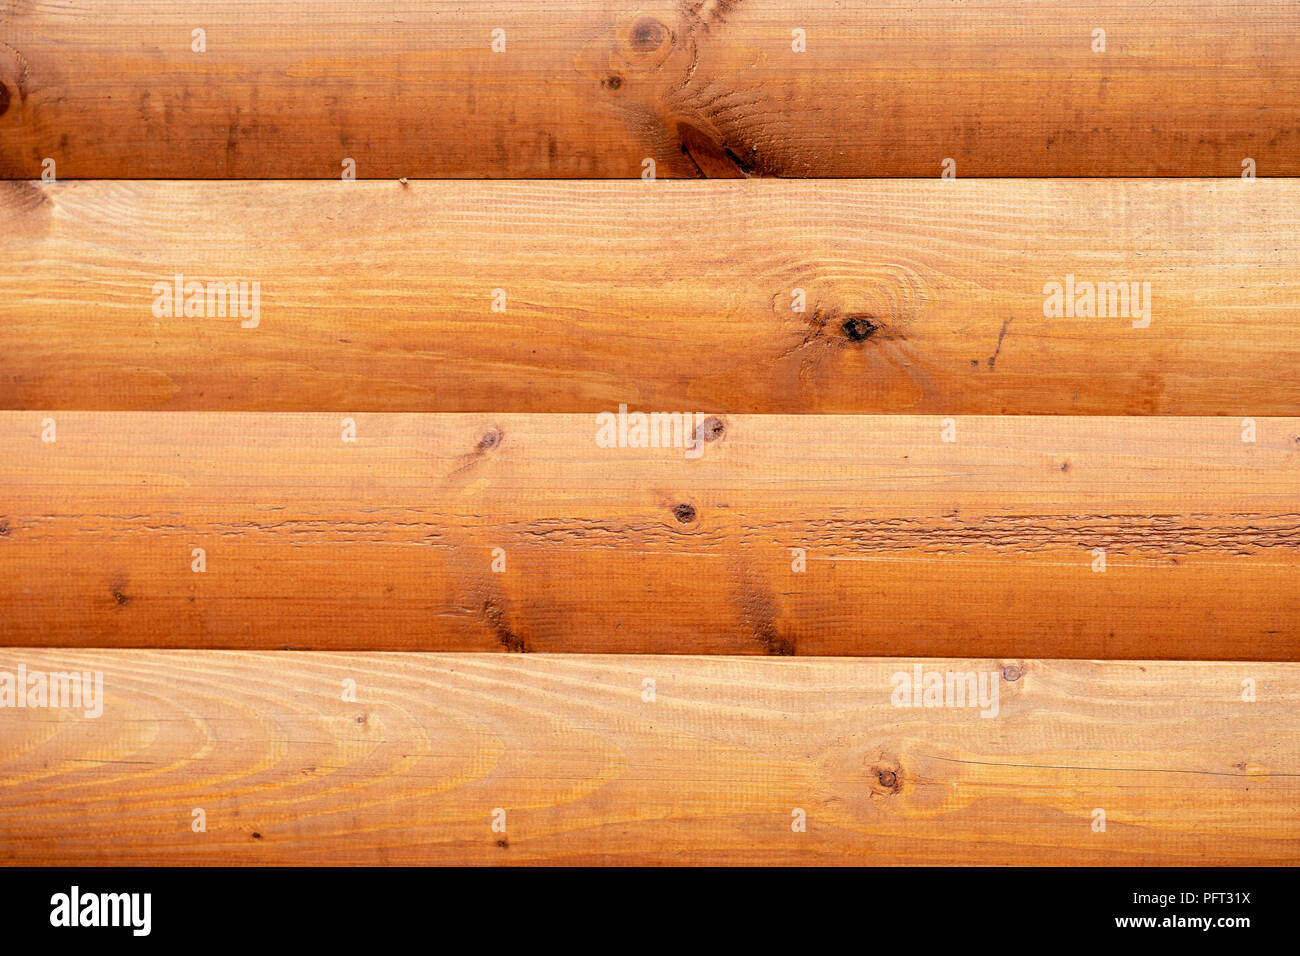 Natural wooden surface, texture. Rustic wooden horizontal brown wood planks with cracks, scratches, twigs, modern design, background, copy space - Stock Image